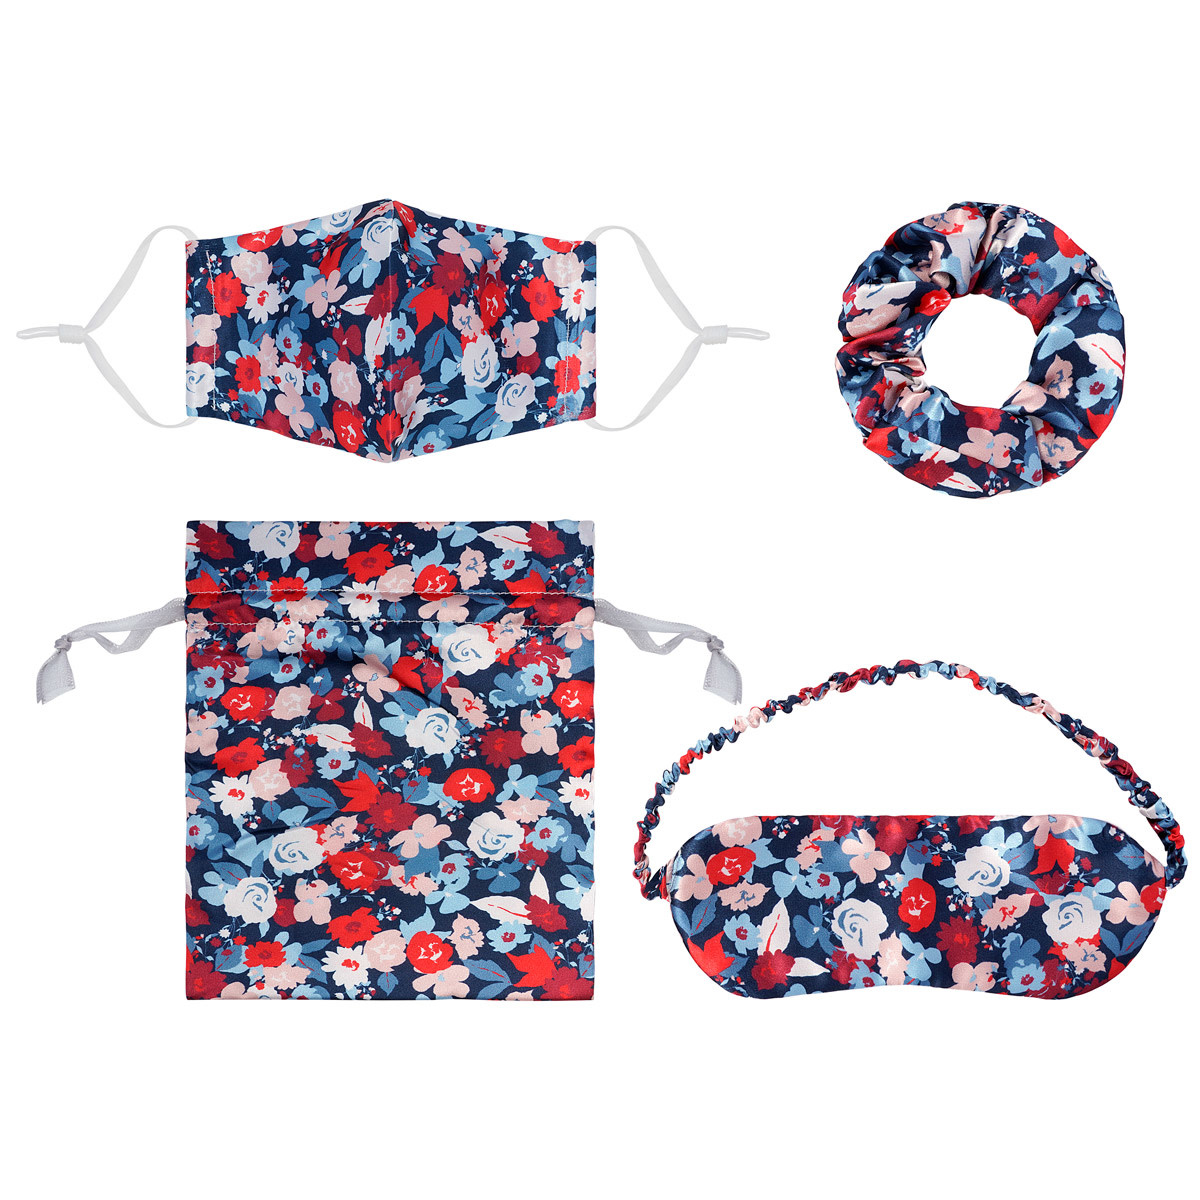 With love Gift set mouth mask - scrunchie - sleeping mask - bag FLOWERS